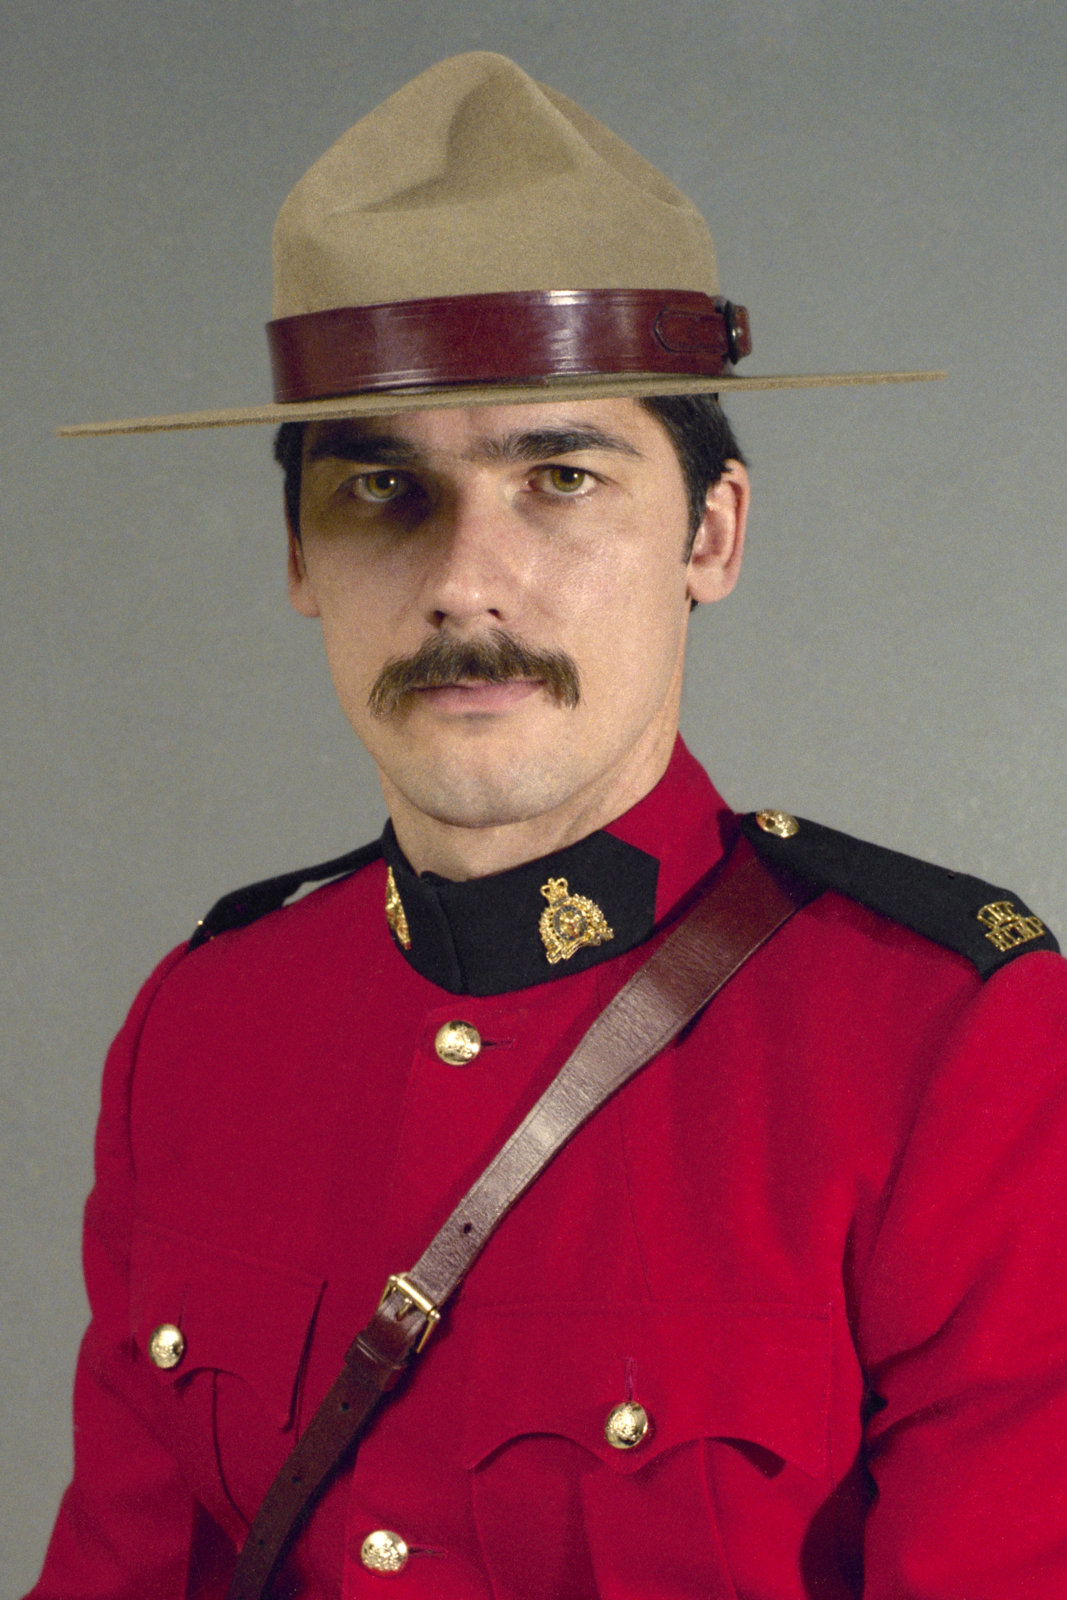 Corporal Derek John Flanagan– © Her Majesty the Queen in Right of Canada as represented by the Royal Canadian Mounted Police